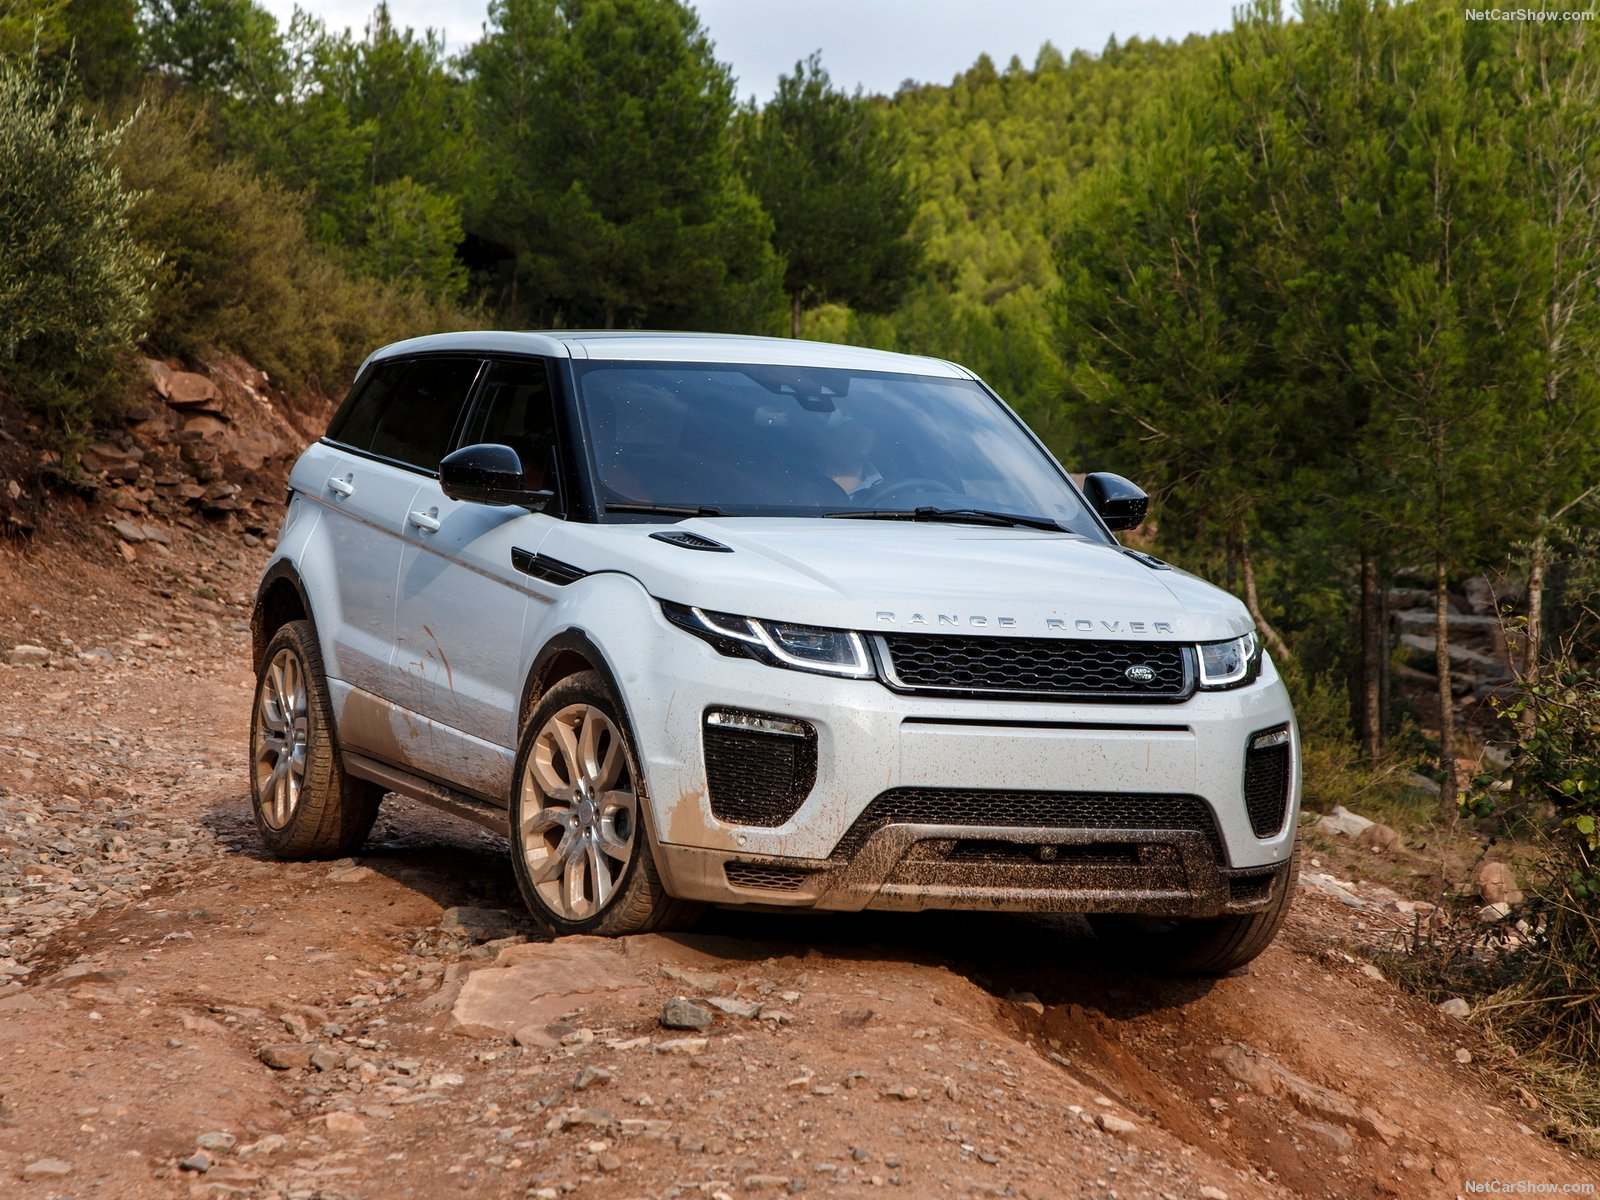 land rover range rover evoque photos photogallery with 176 pics cars pictures. Black Bedroom Furniture Sets. Home Design Ideas